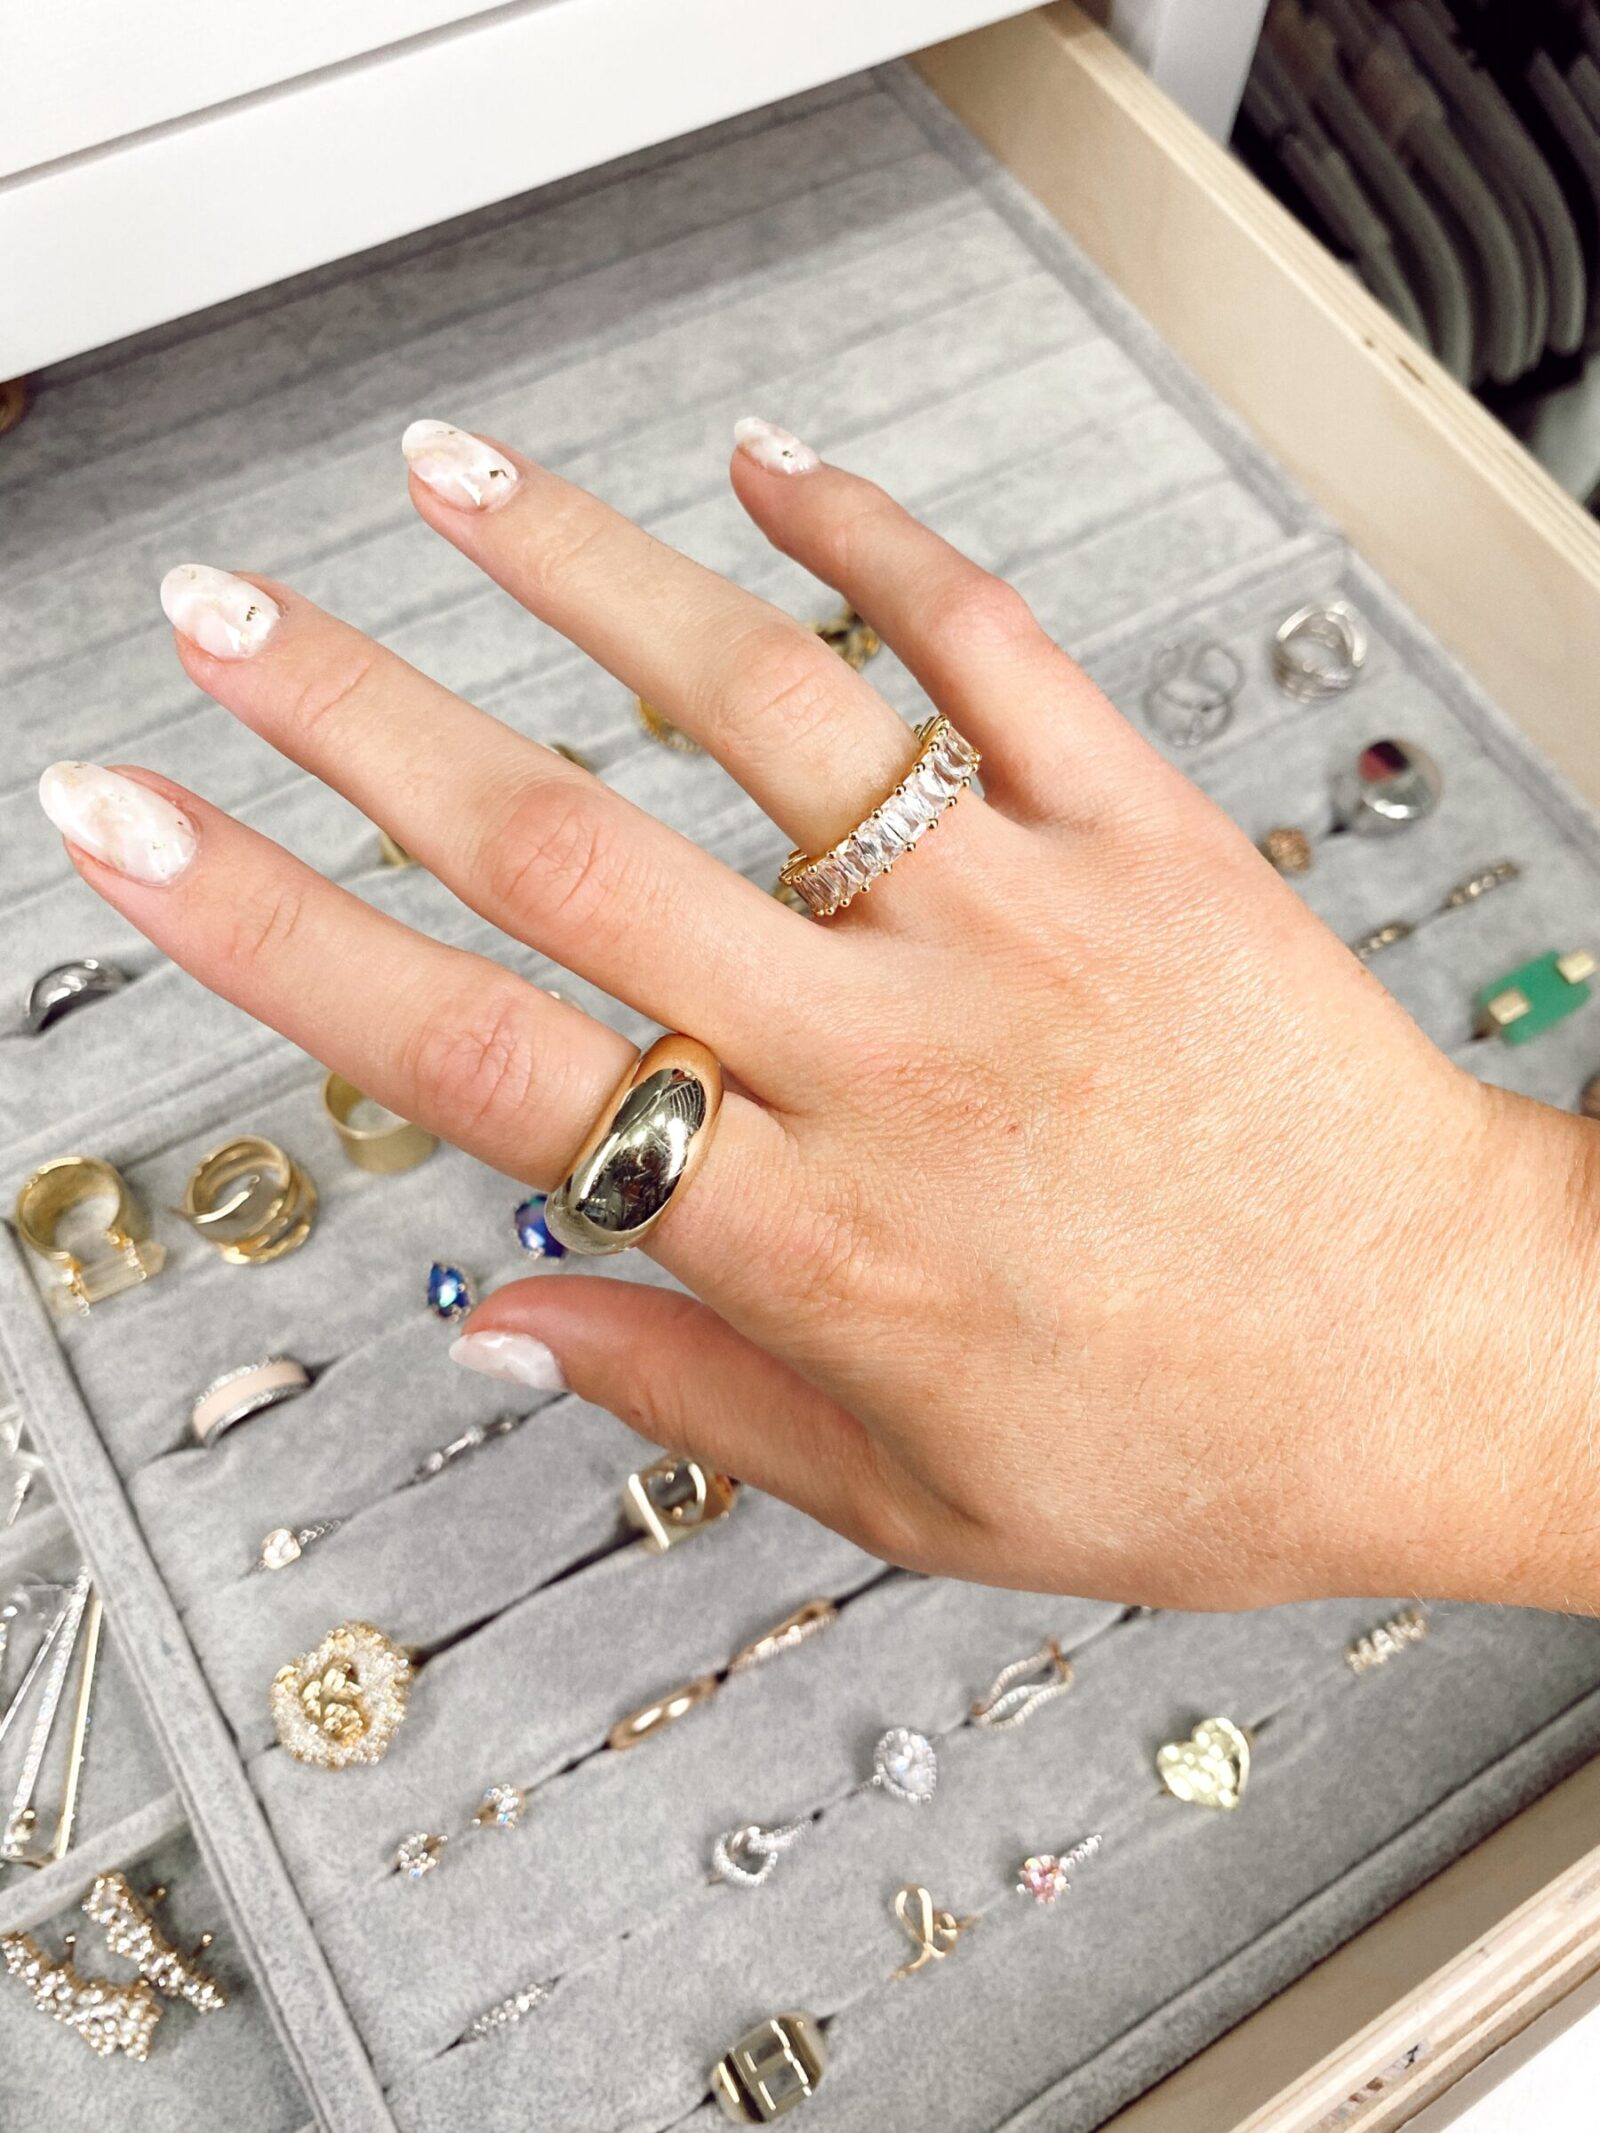 Where to Buy Affordable Dainty gold Rings for Everyday Wear